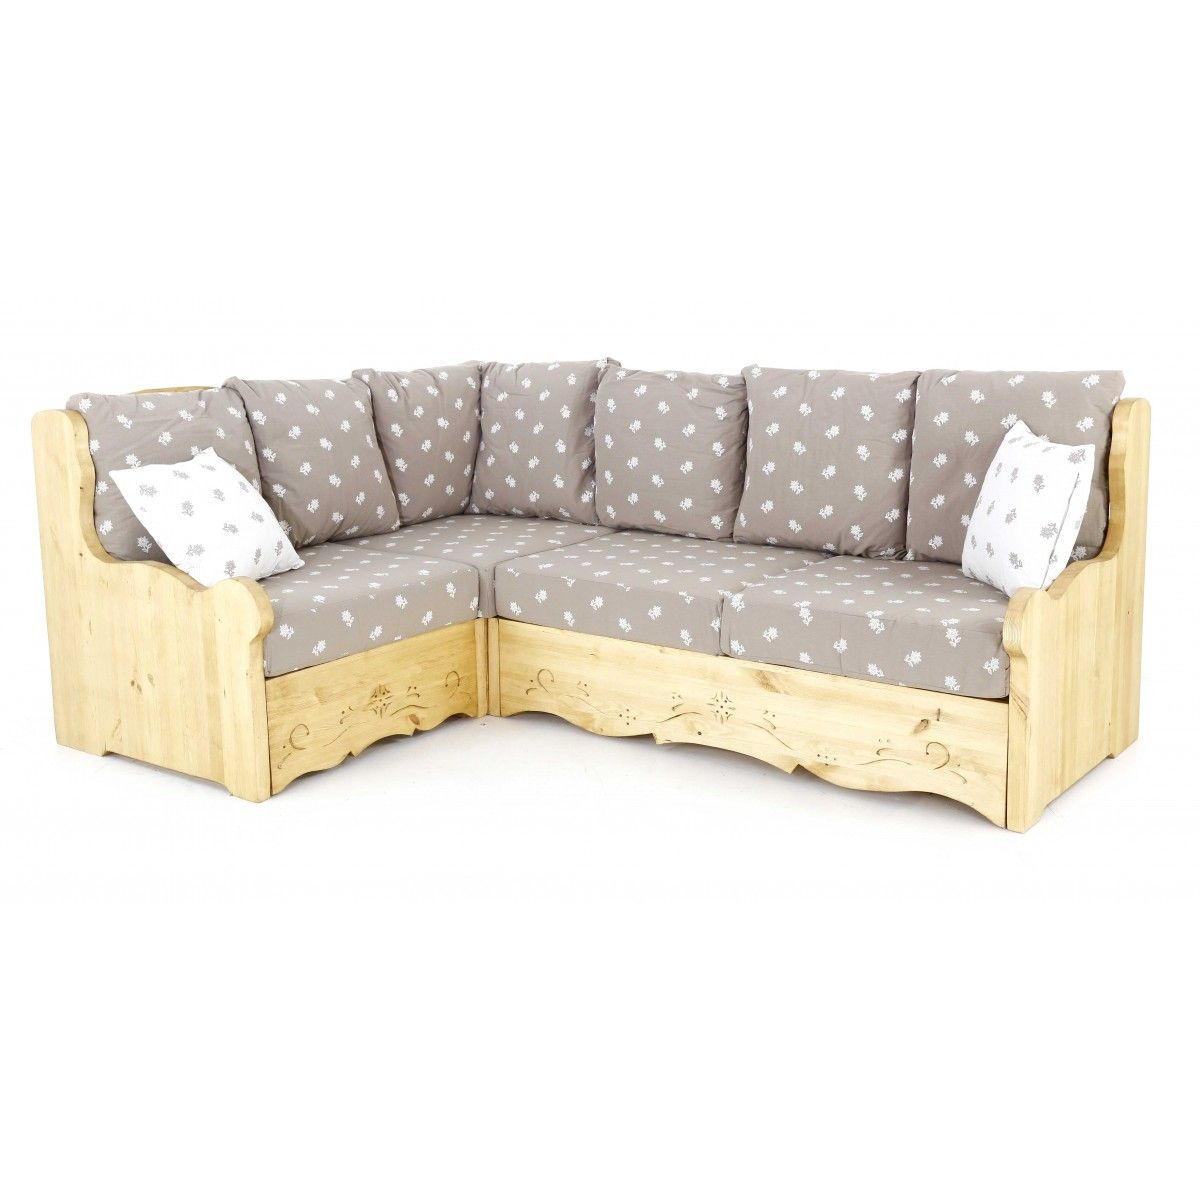 Canape D Angle Coffre Rustique Taupe Edelweiss Canape D Angle Modulable Canape Angle Deco Mezzanine